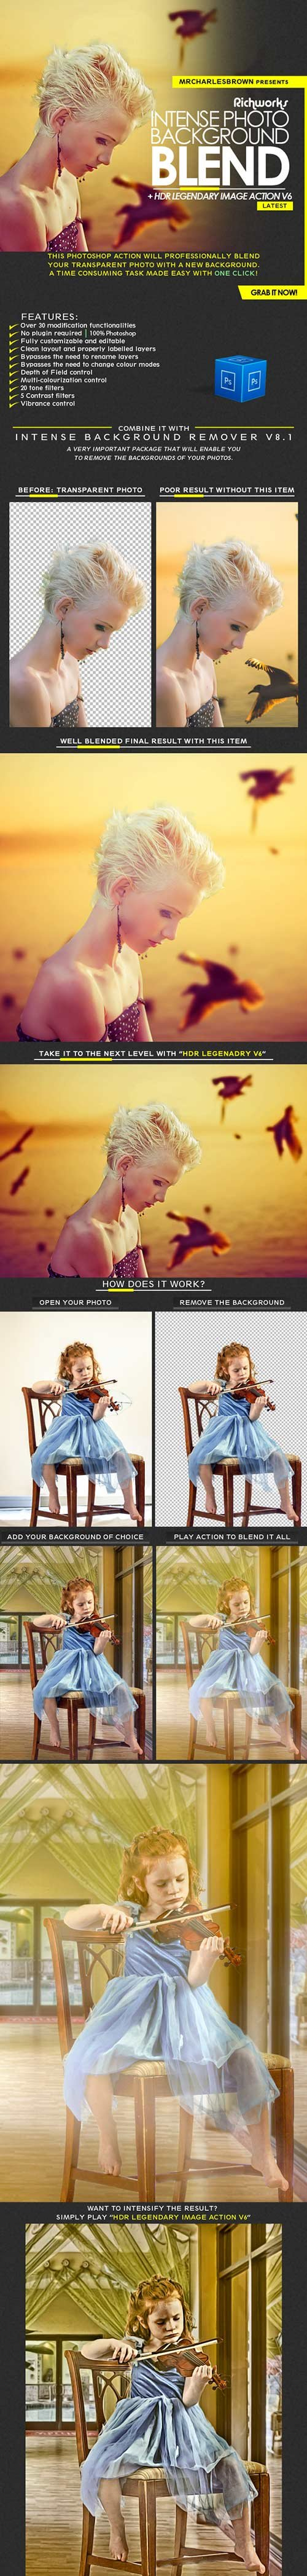 GraphicRiver - Intense Photo Background Blend 22426021